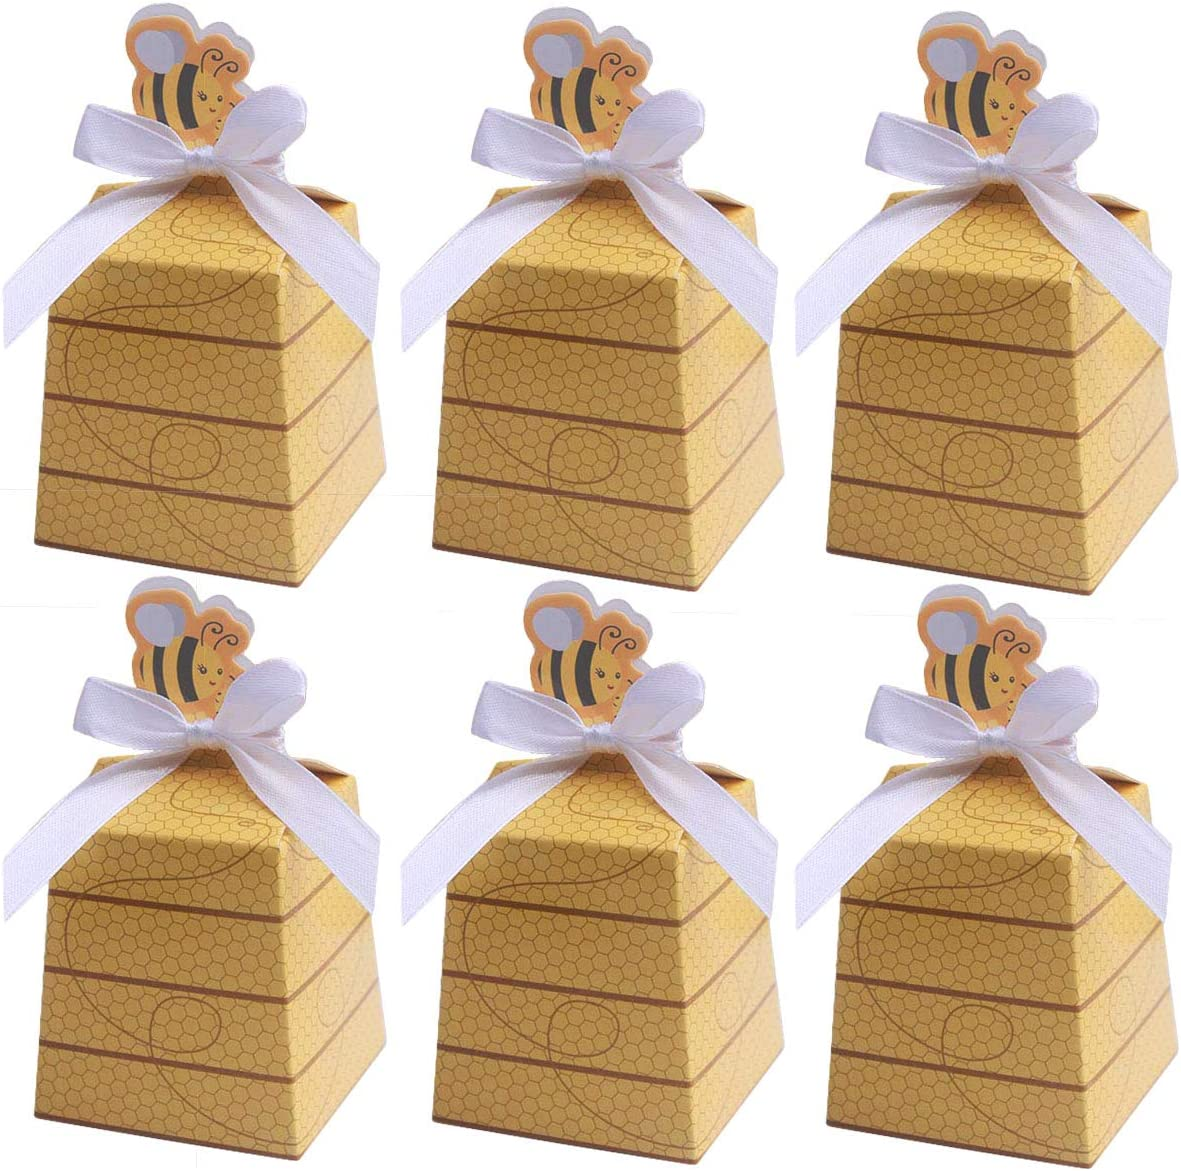 MeiMeiDa 60 Pack Bumble Bee Candy Boxes Treat Boxes Paper Beehive Gift Box with Ribbon for Bee Party Decoration Bee Birthday Baby Shower Favors Supplies